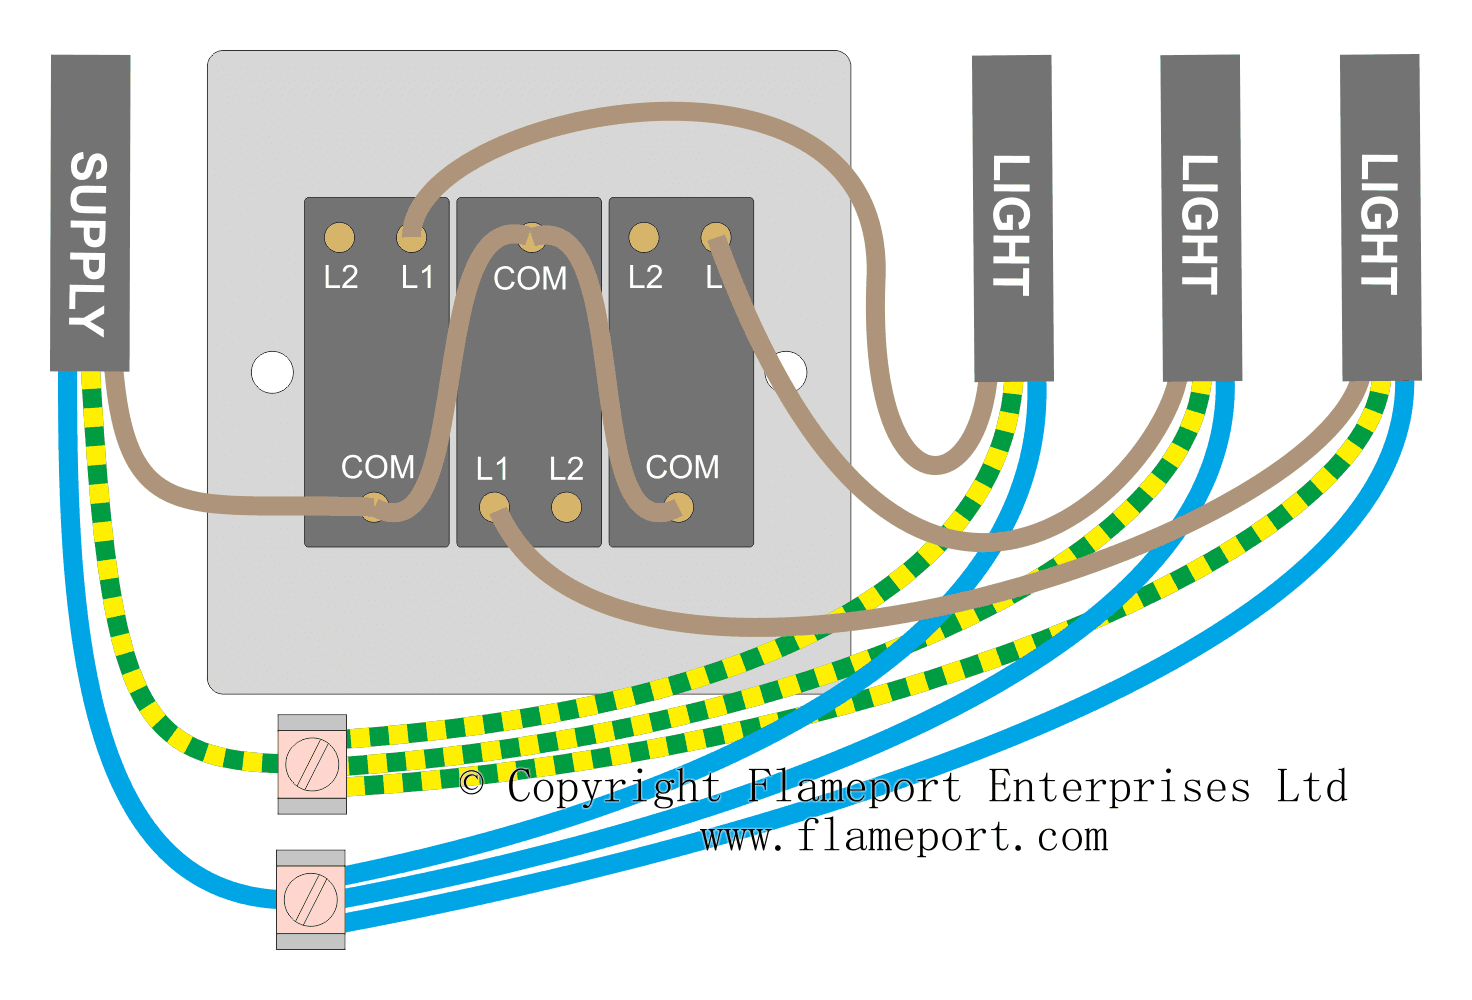 lighting_switch_connections_garage_loft_3gangs?resize\\\=665%2C452\\\&ssl\\\=1 diagrams 800701 insteon switch wire diagram insteon switchlinc insteon wiring diagram at aneh.co